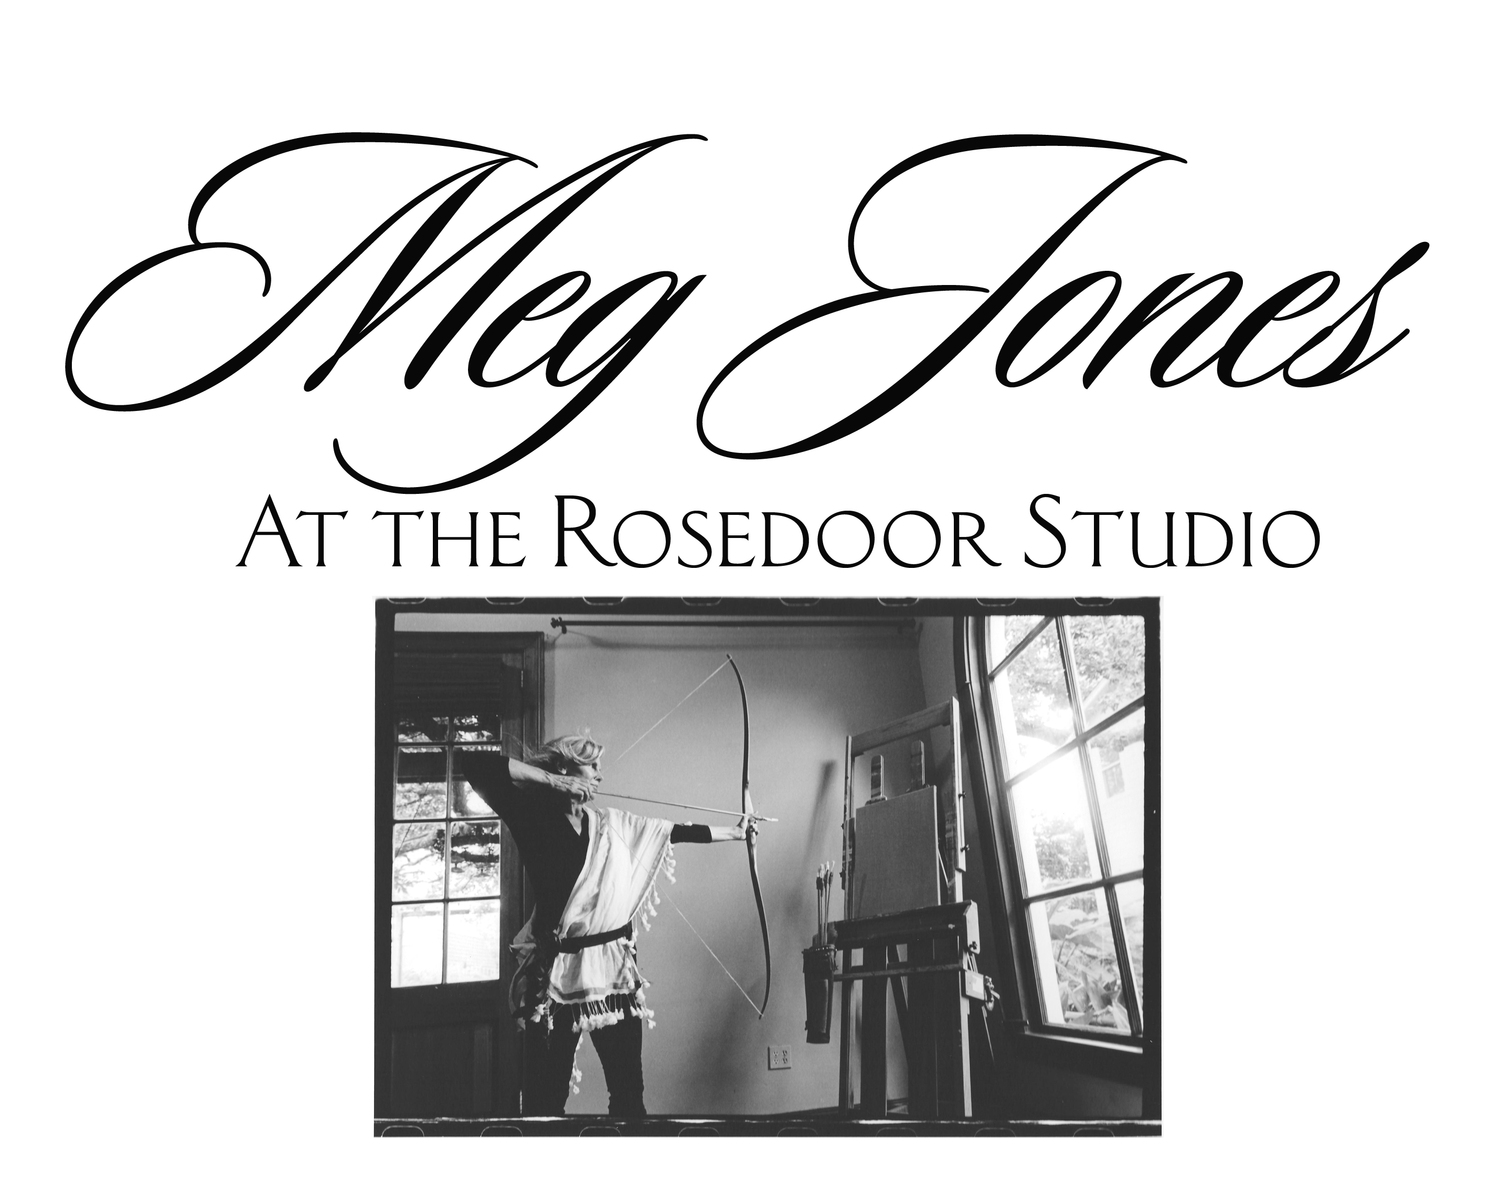 Meg Jones at the Rosedoor Studio